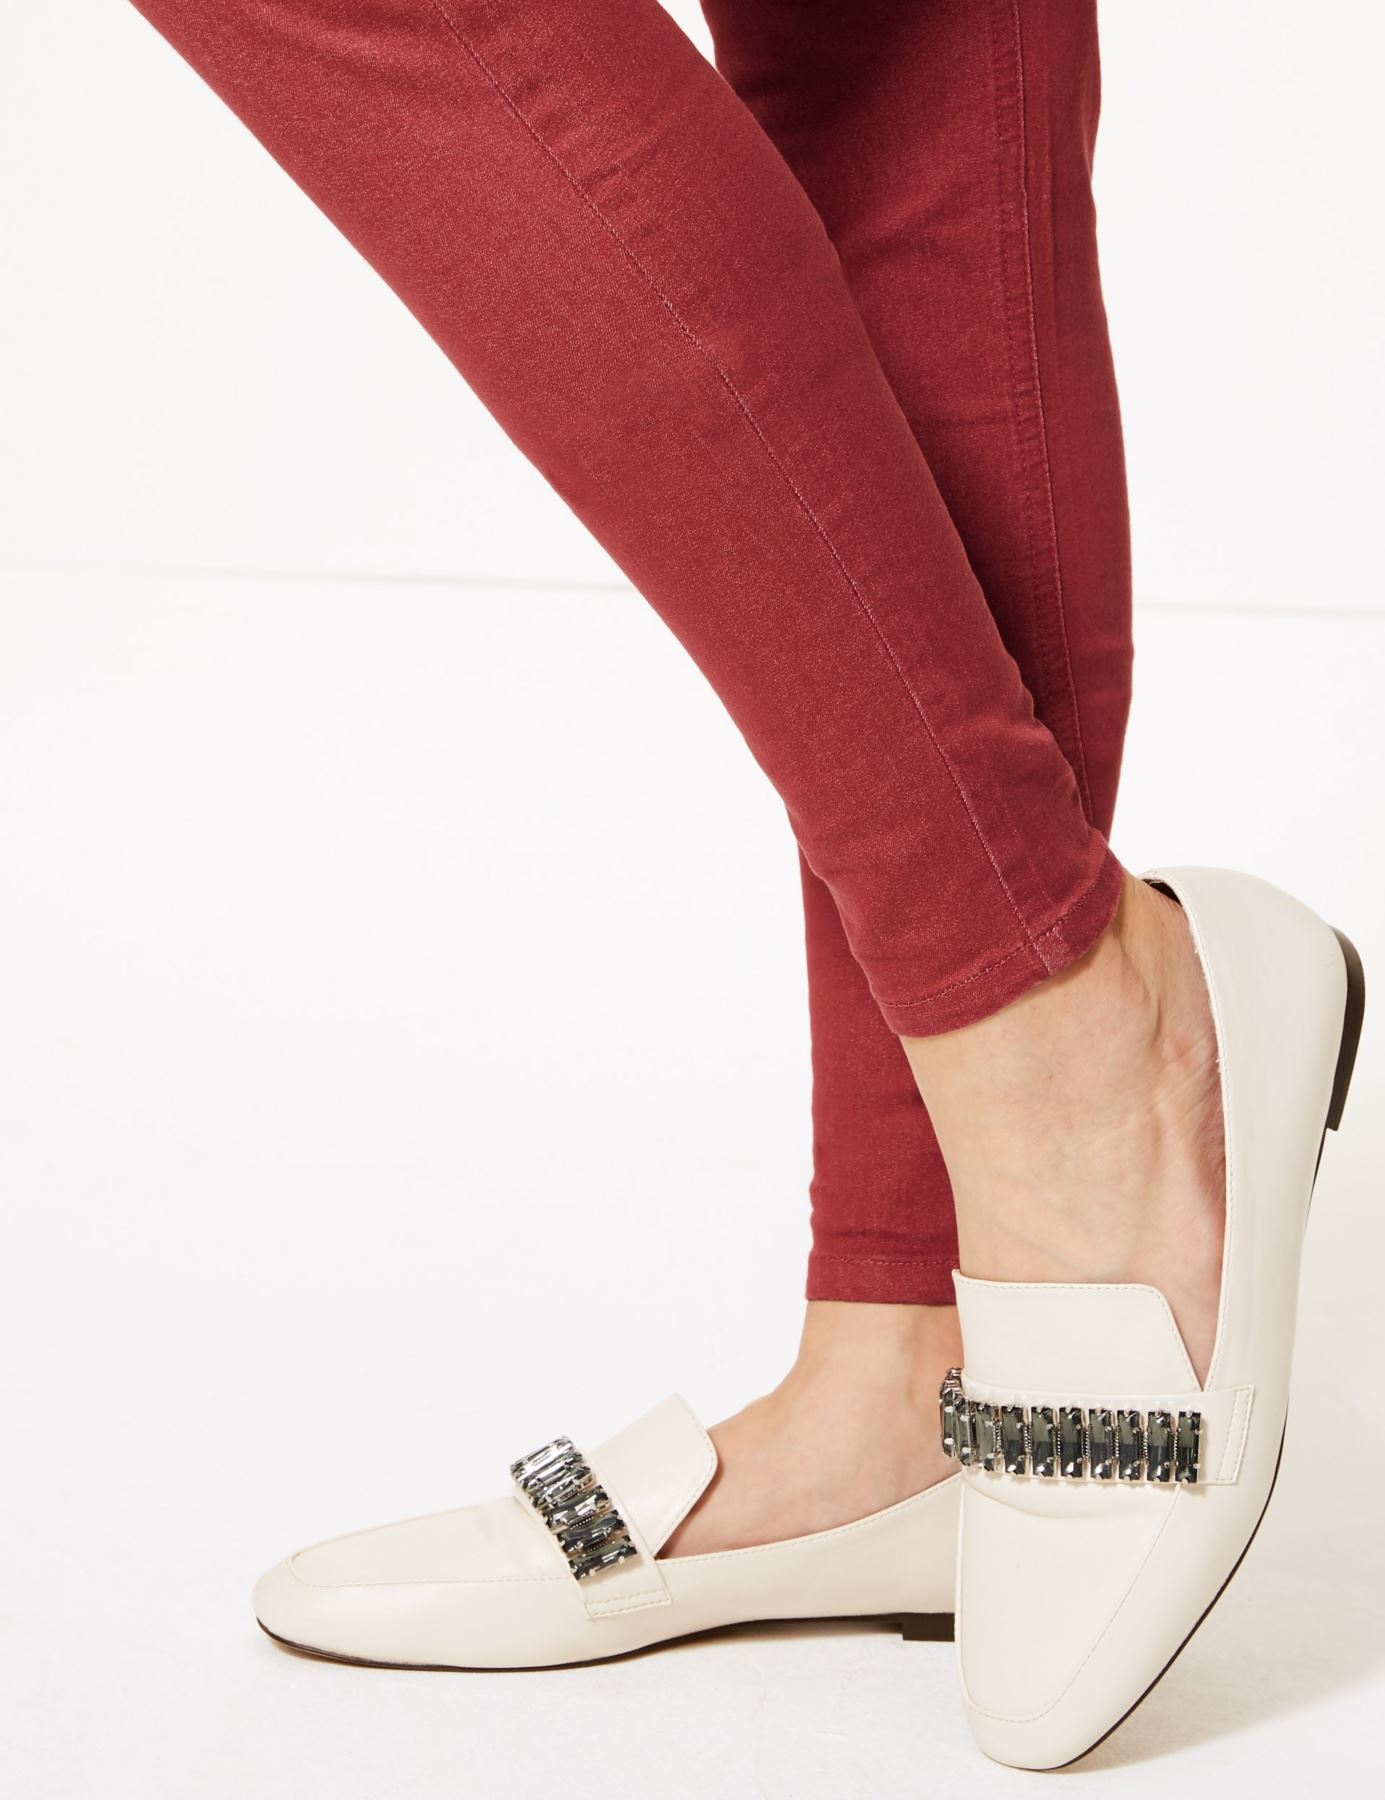 NEW-Ex-M-amp-S-Womens-Stretch-Fit-High-Waist-Skinny-Jeggings-Size-8-10-12-14-16-18 thumbnail 13